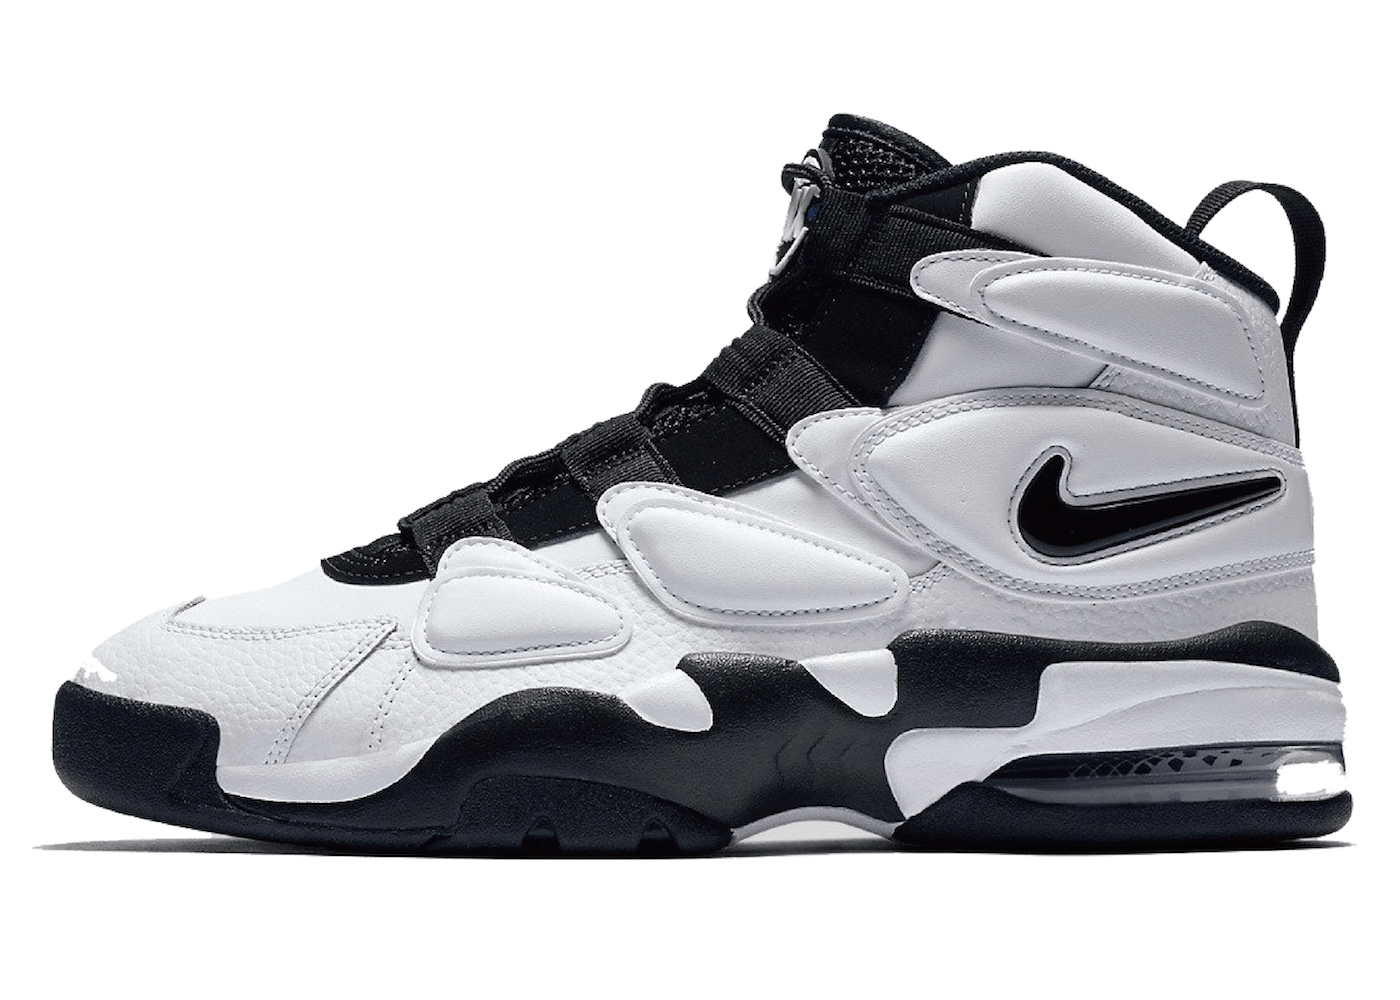 Air Max 2 Uptempo 94 OG White Black (2017)の写真